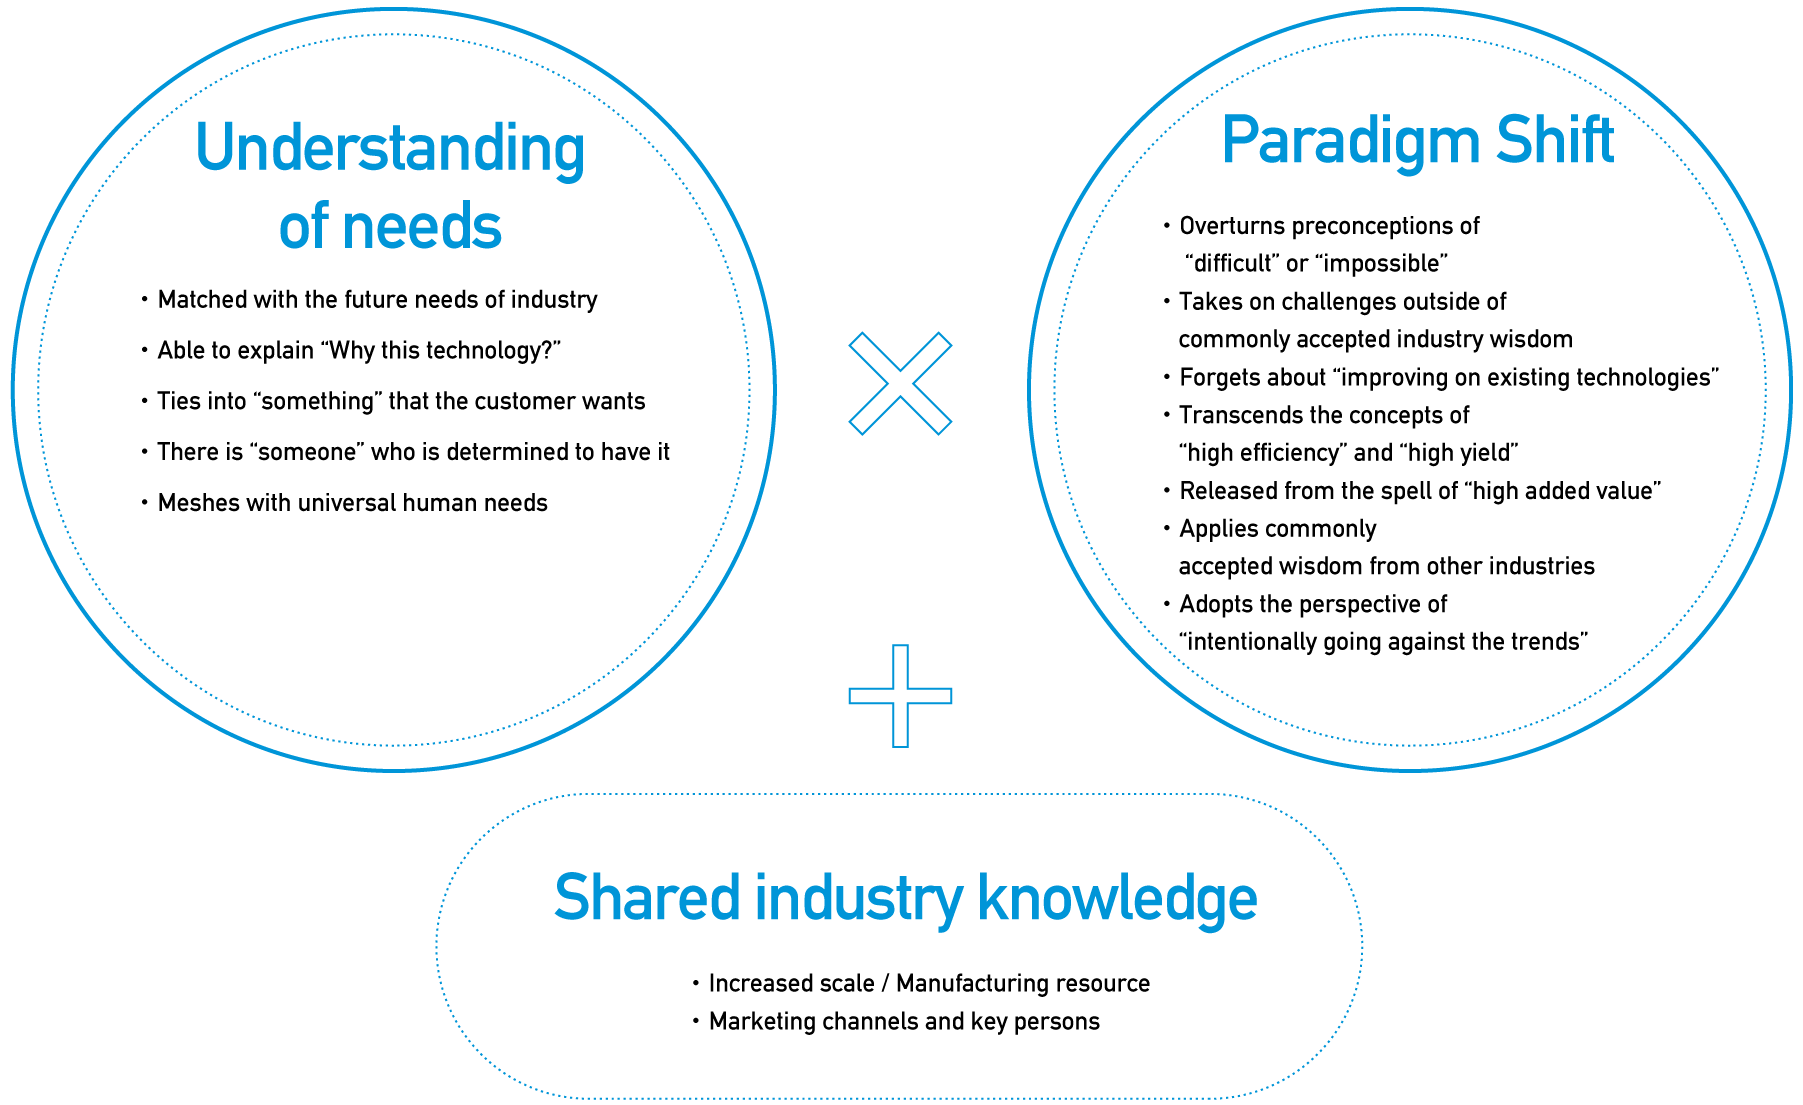 Understanding of needs, Paradigm Shift, Shared industry knowledge